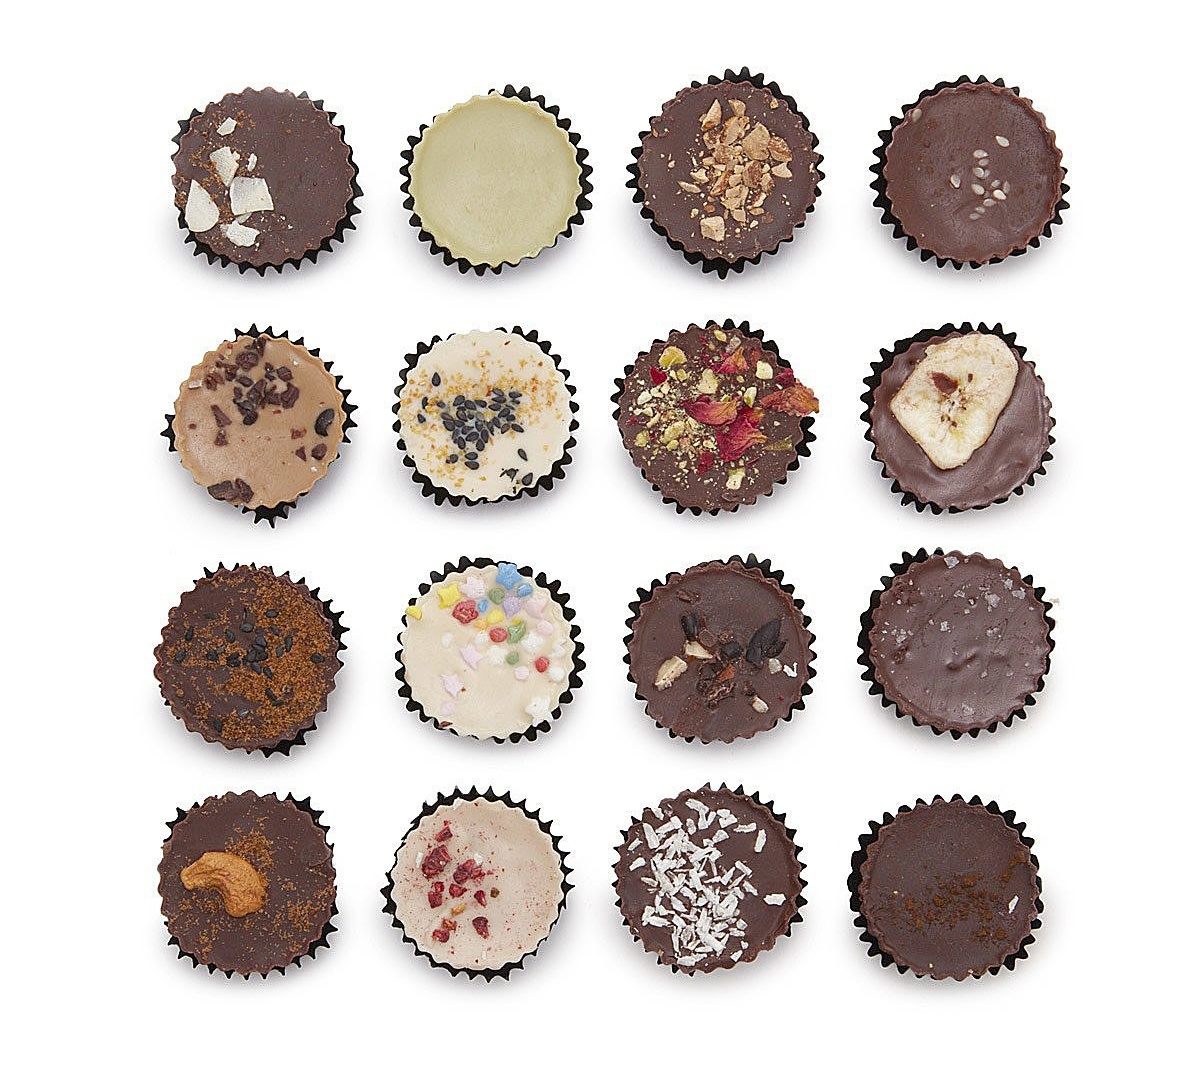 Gourmet Peanut and Nut Butter Cups | UncommonGoods